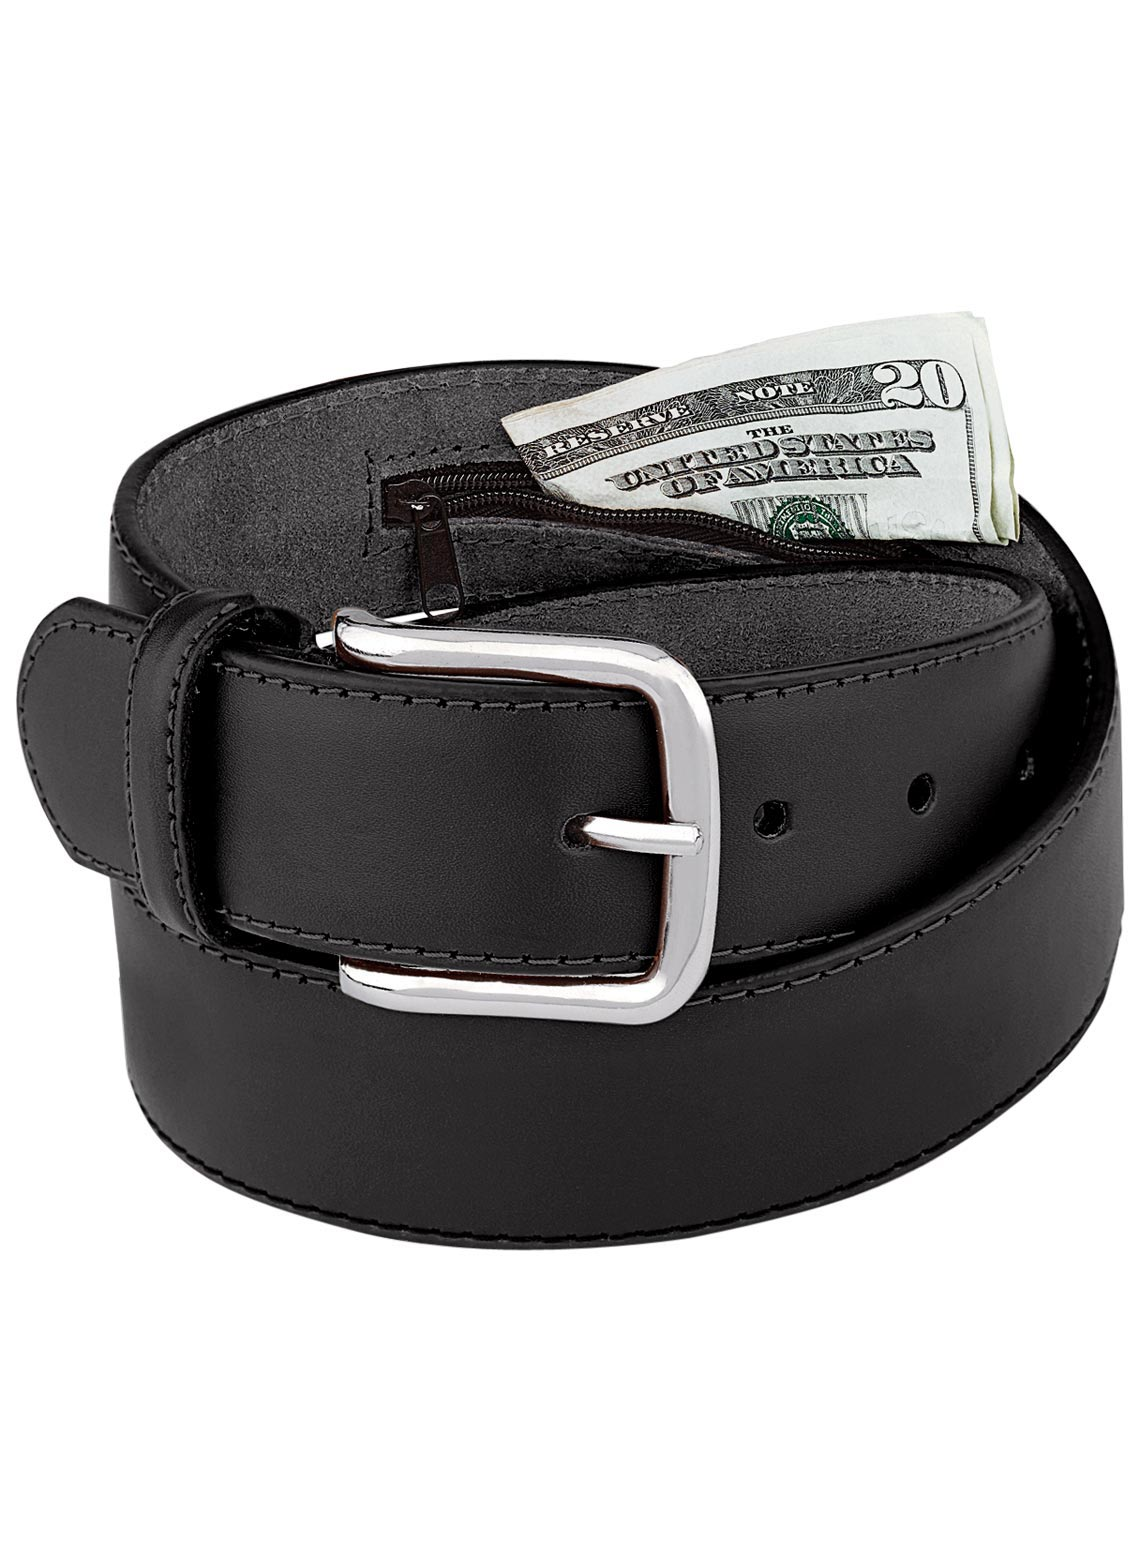 leather money belt drleonards